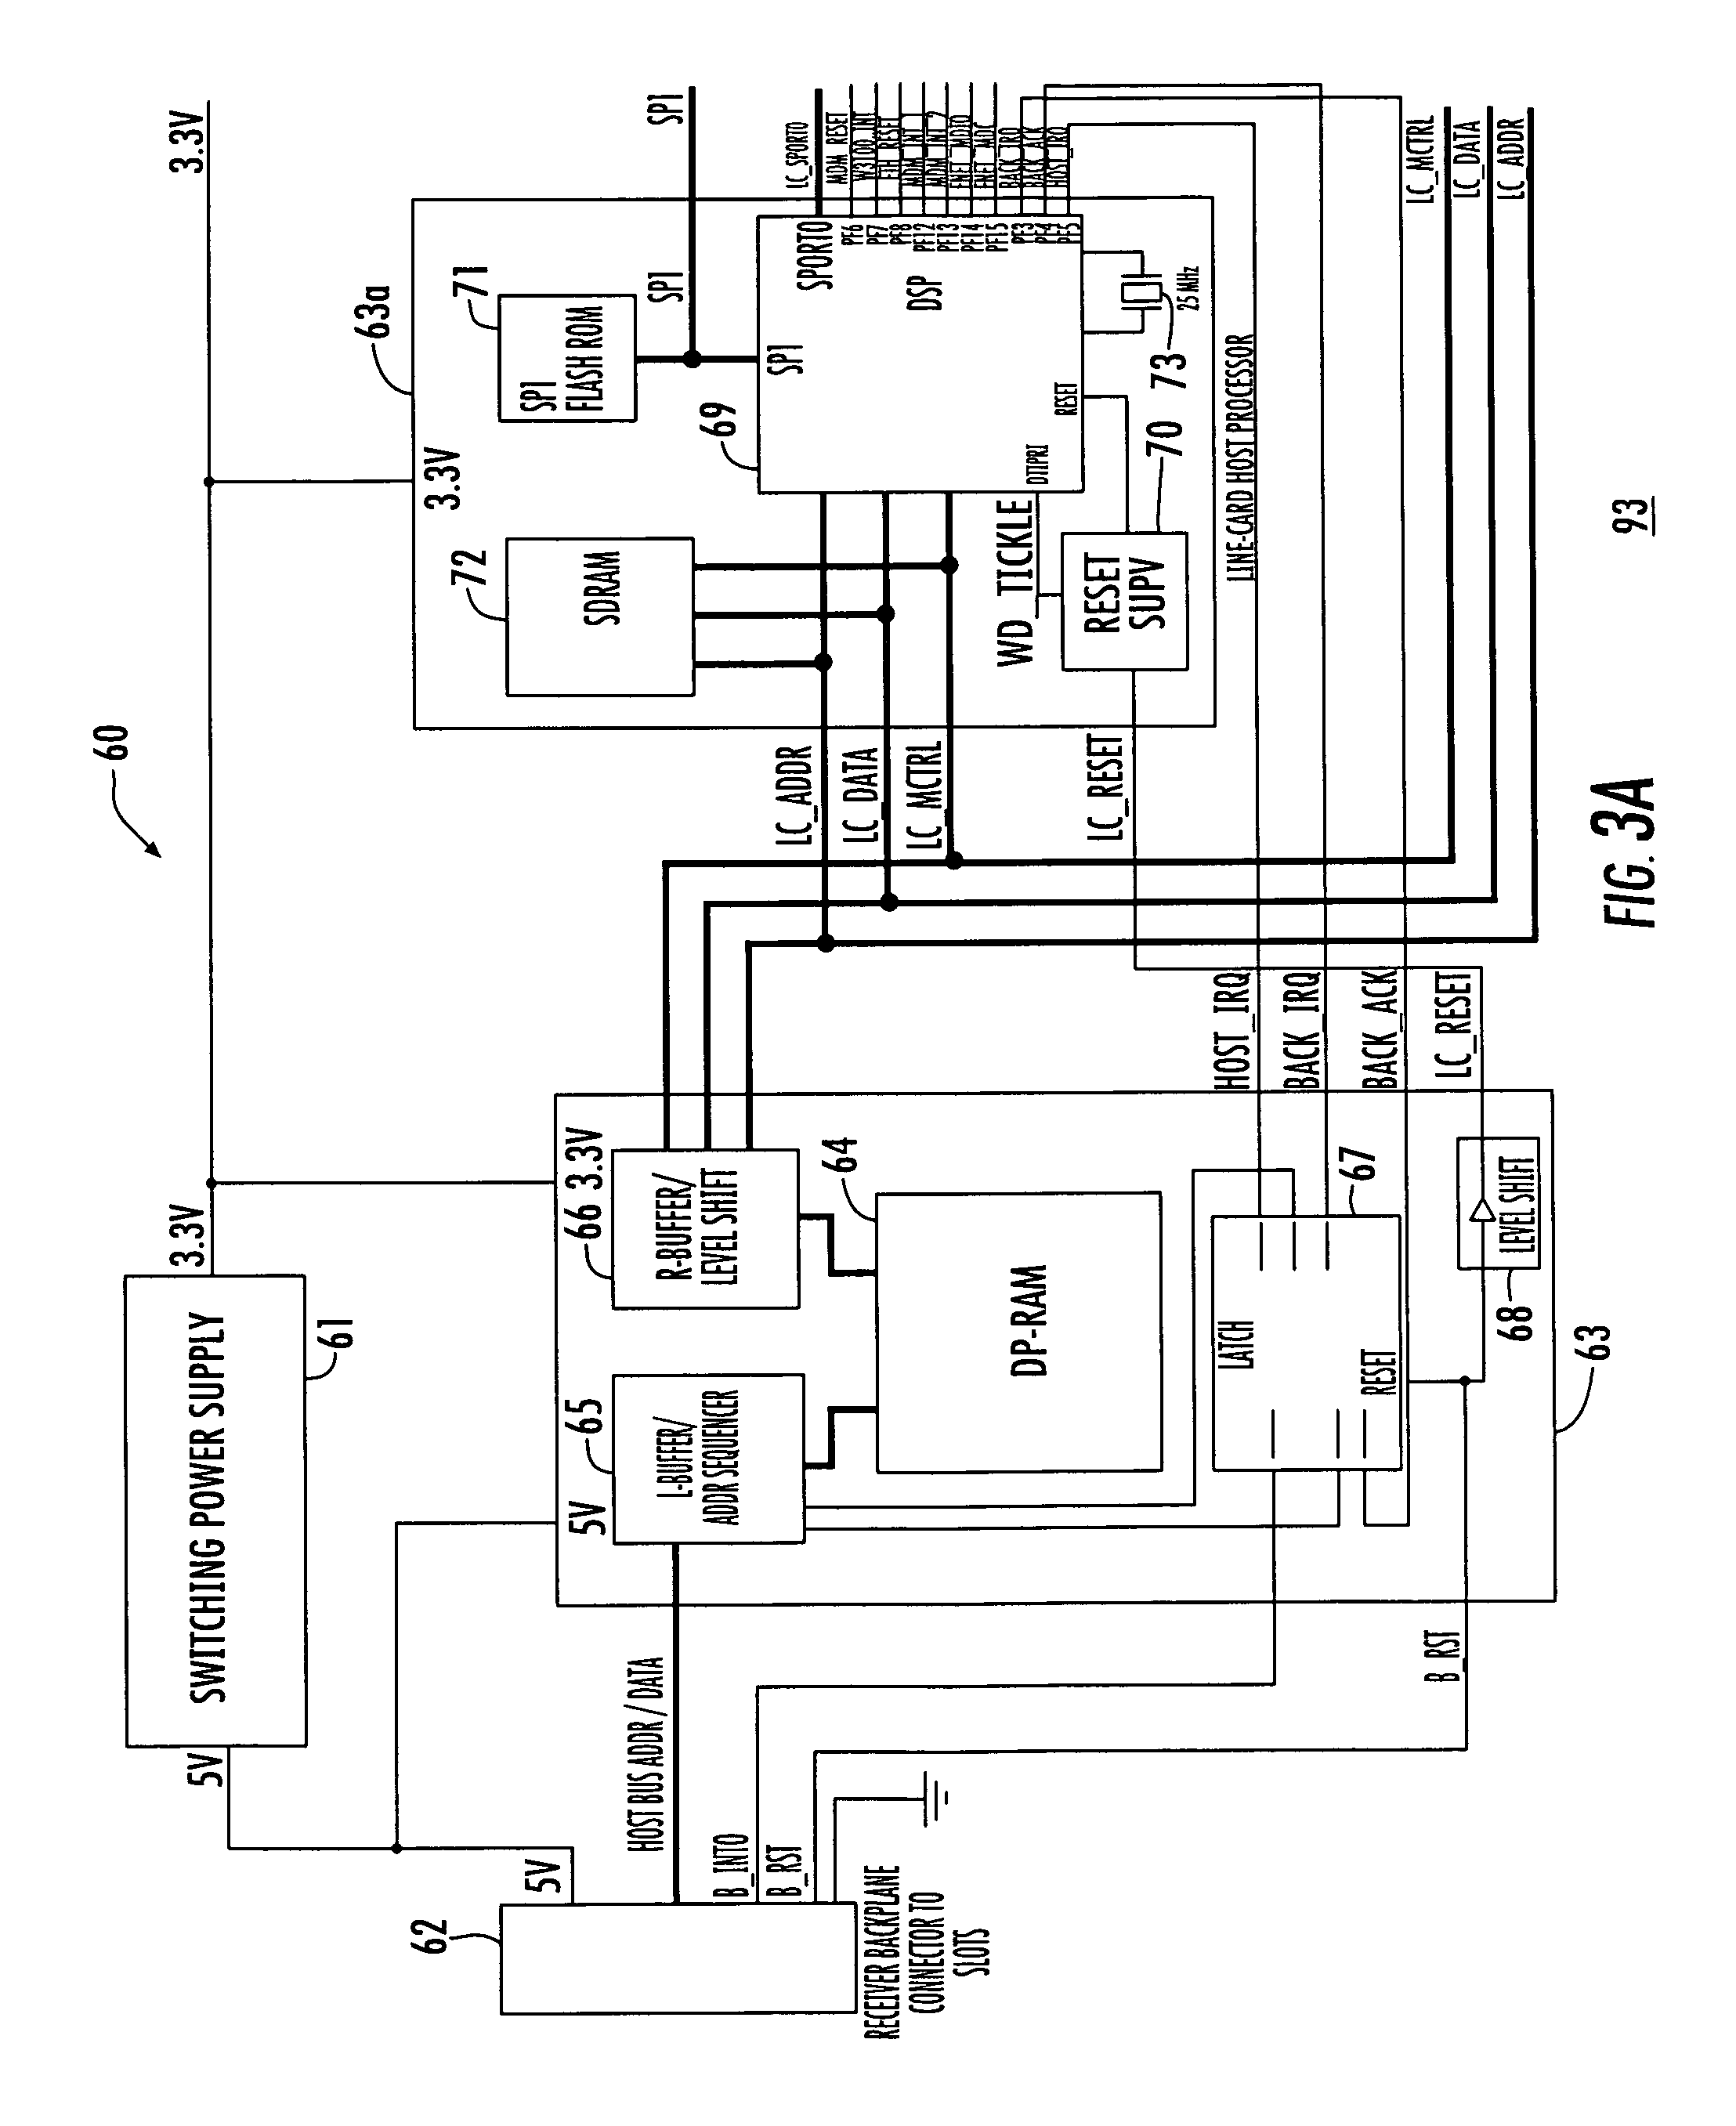 US08531286 20130910 D00004 patent us8531286 system and method for monitoring security at a fire alarm flow switch wiring diagram at reclaimingppi.co